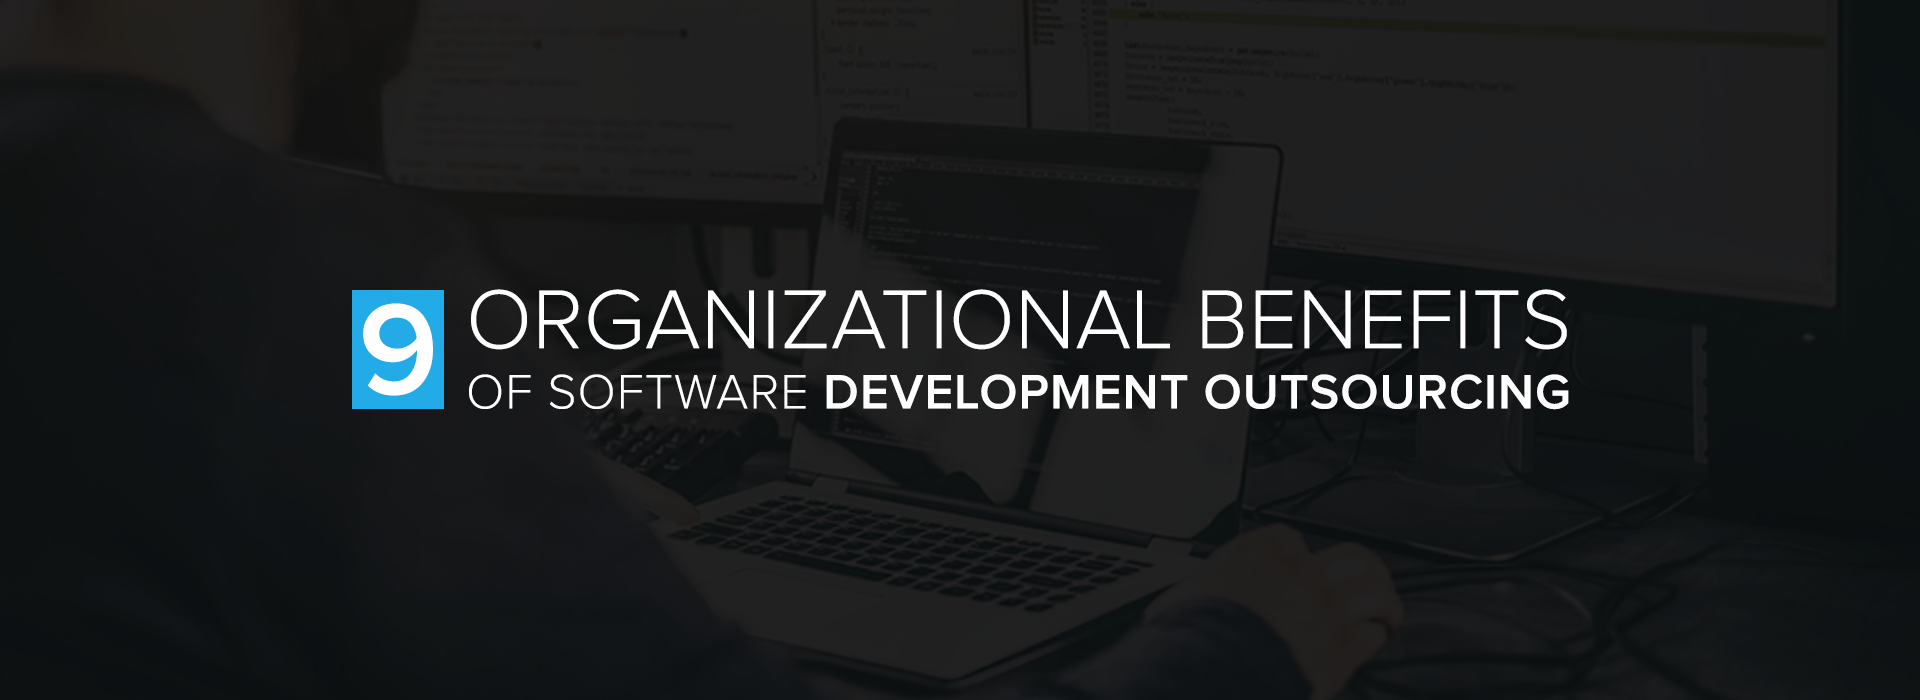 Nine-Organizational-Benefits-of-Software-Development-Outsourcing